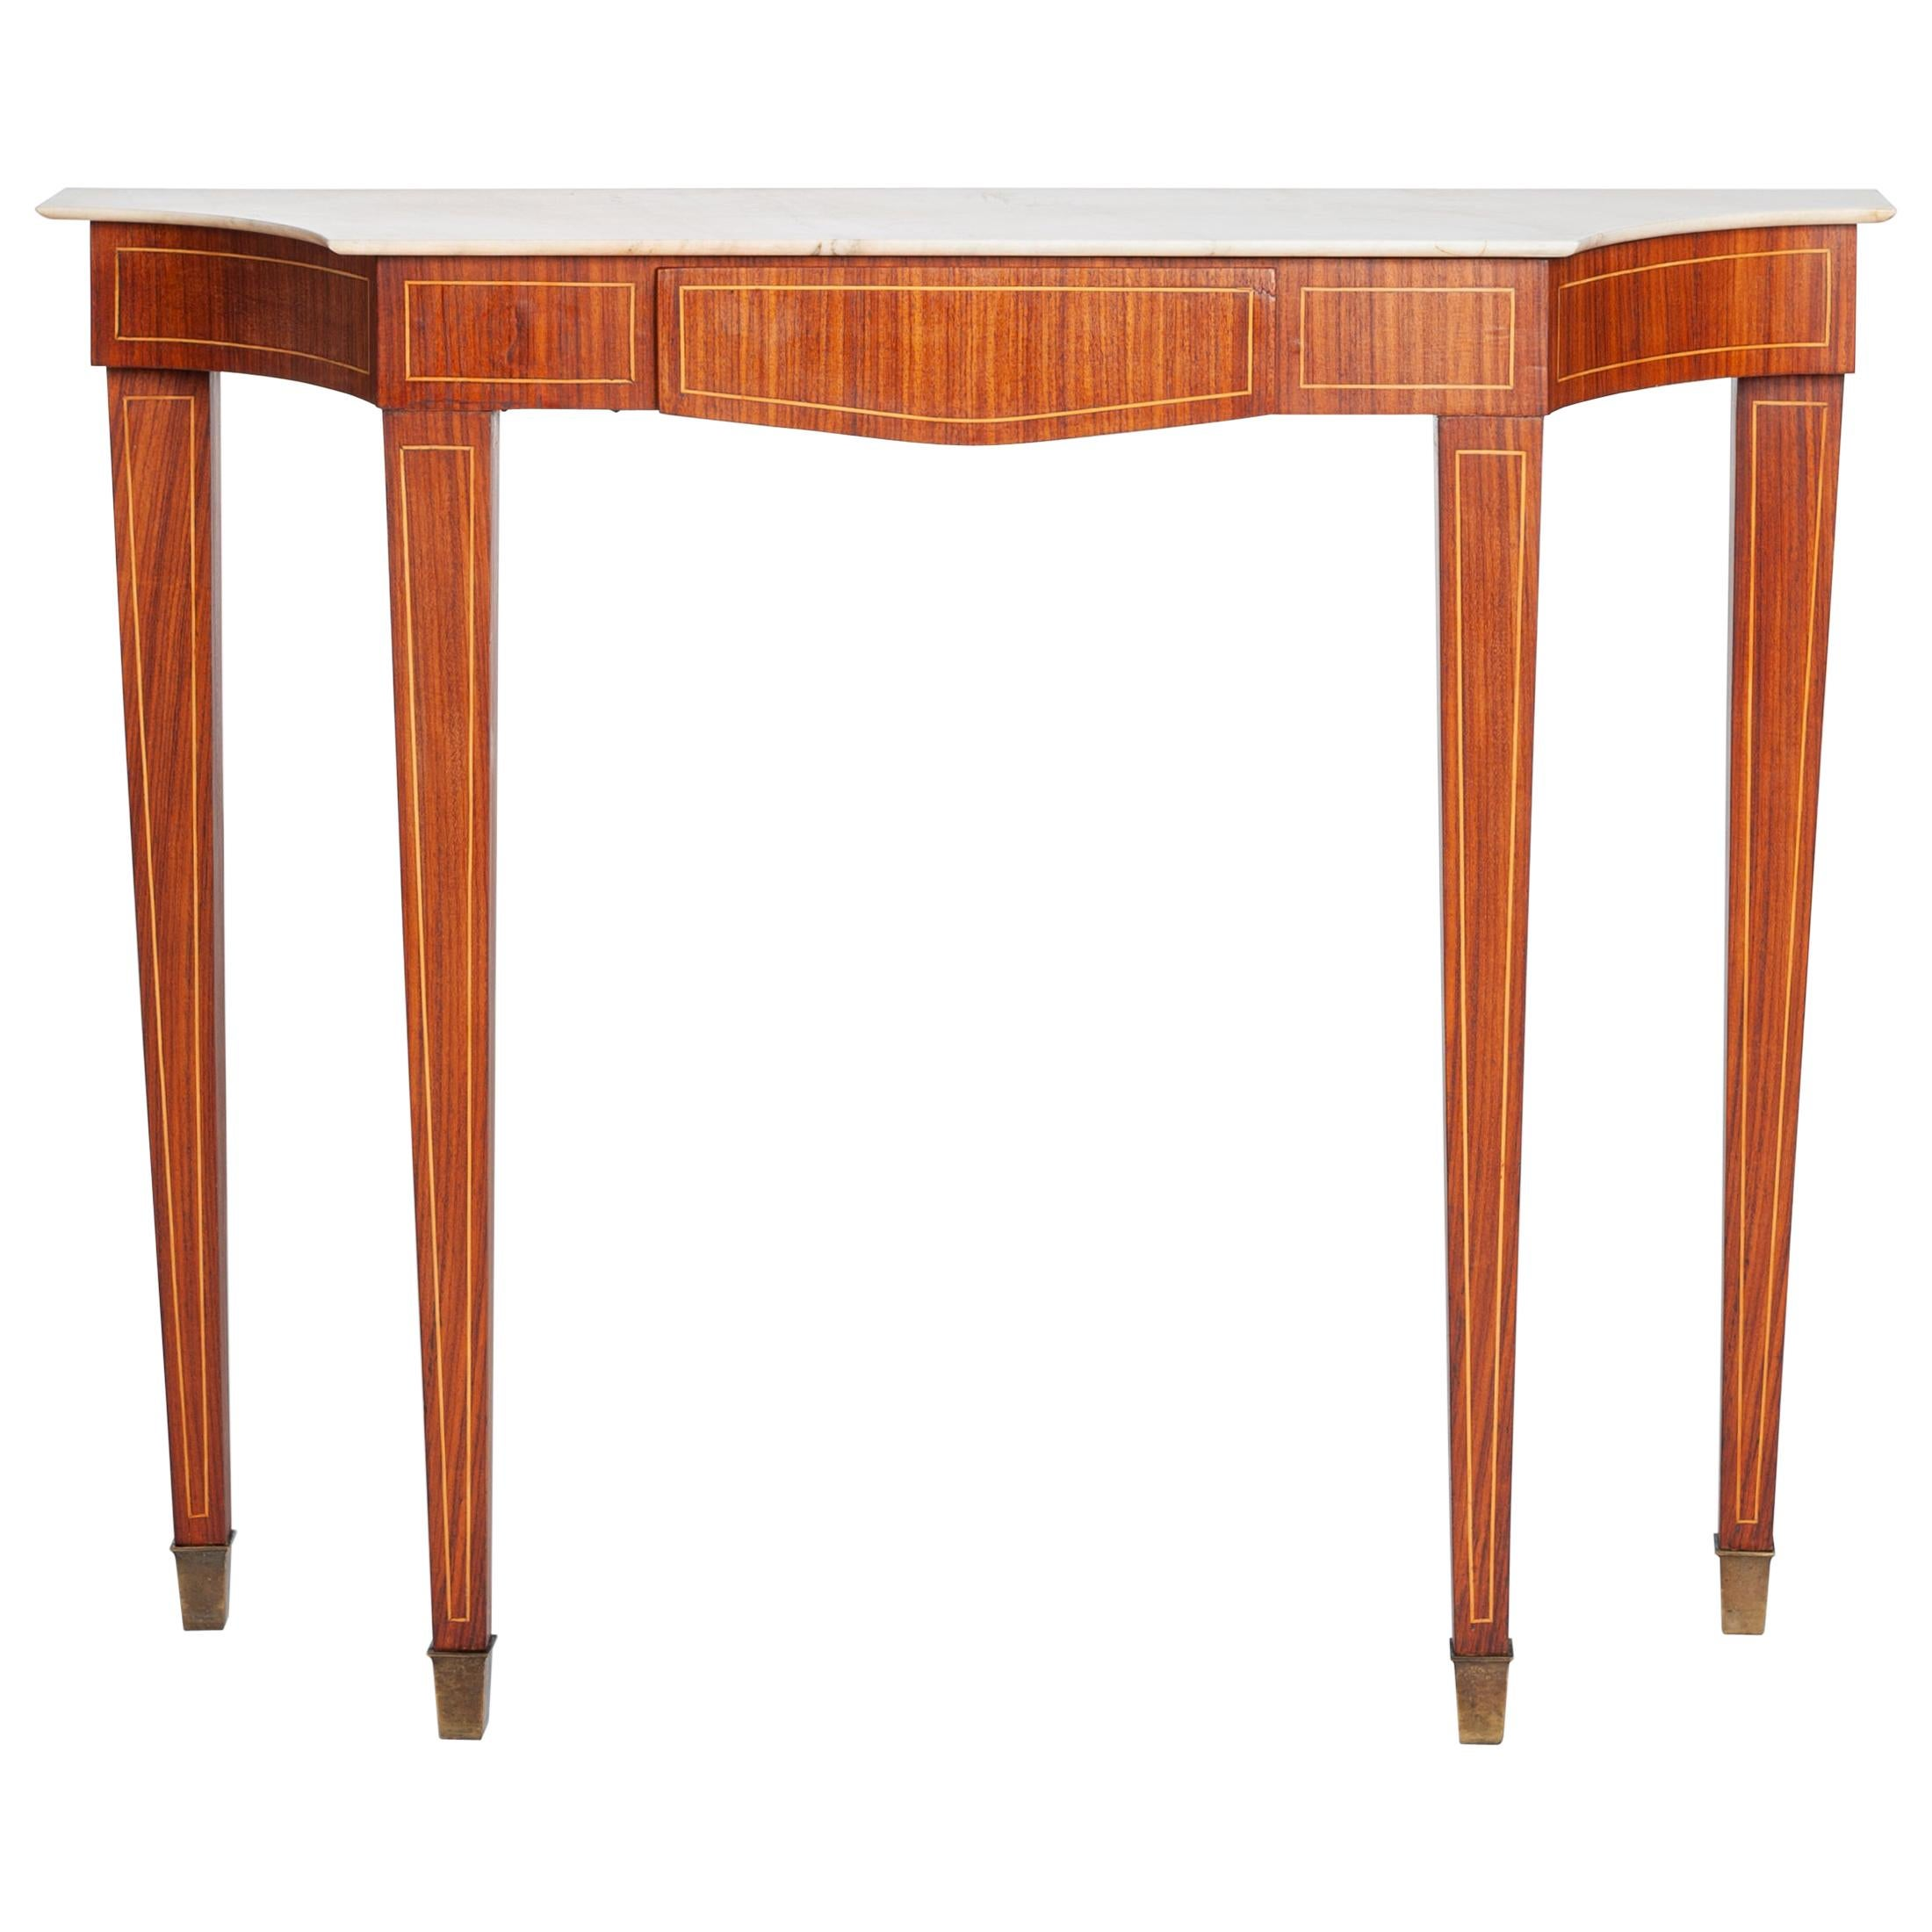 Midcentury Italian Console Table Palisander Wood and Marble Top by Paolo Buffa